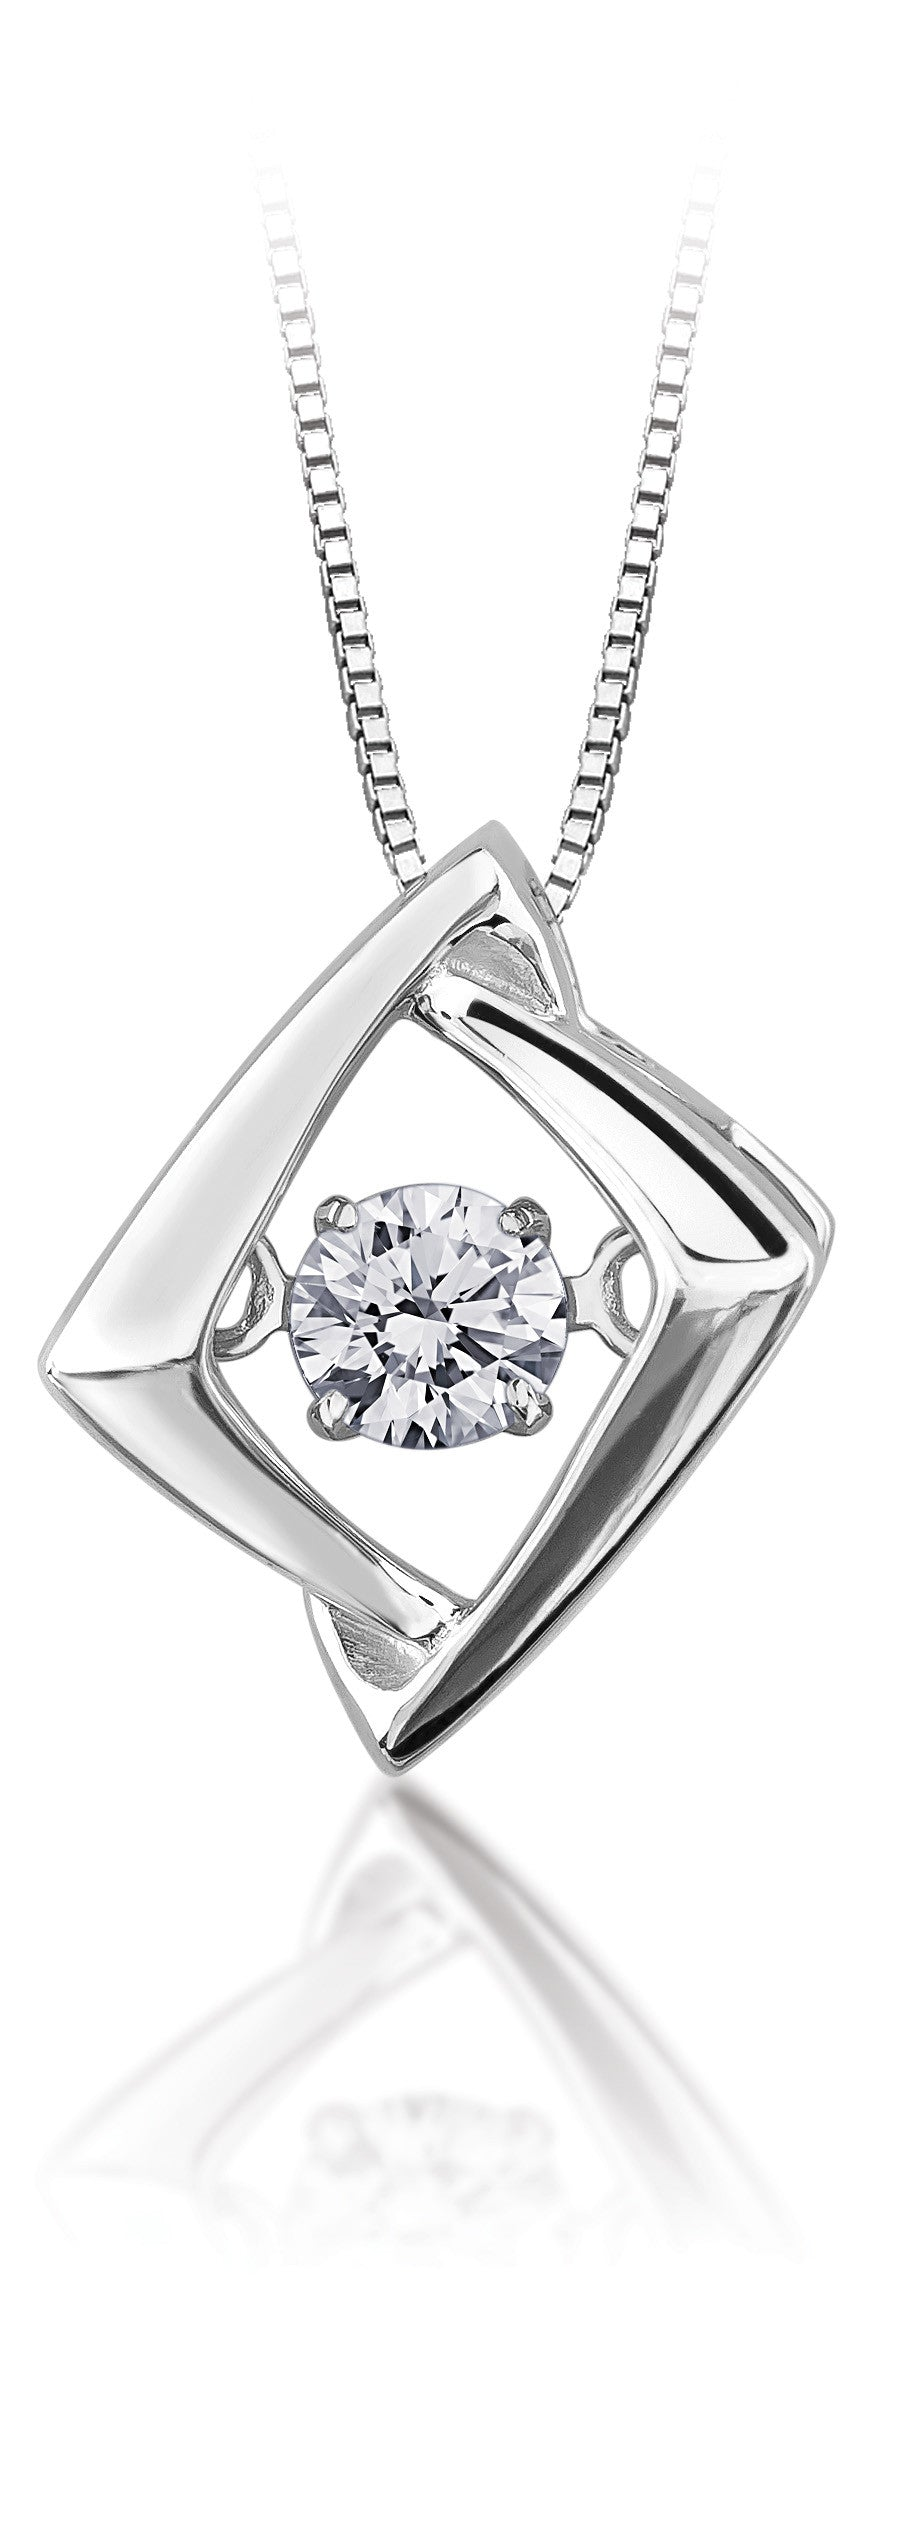 10Kt White Gold Shimmer Diamond Pendant